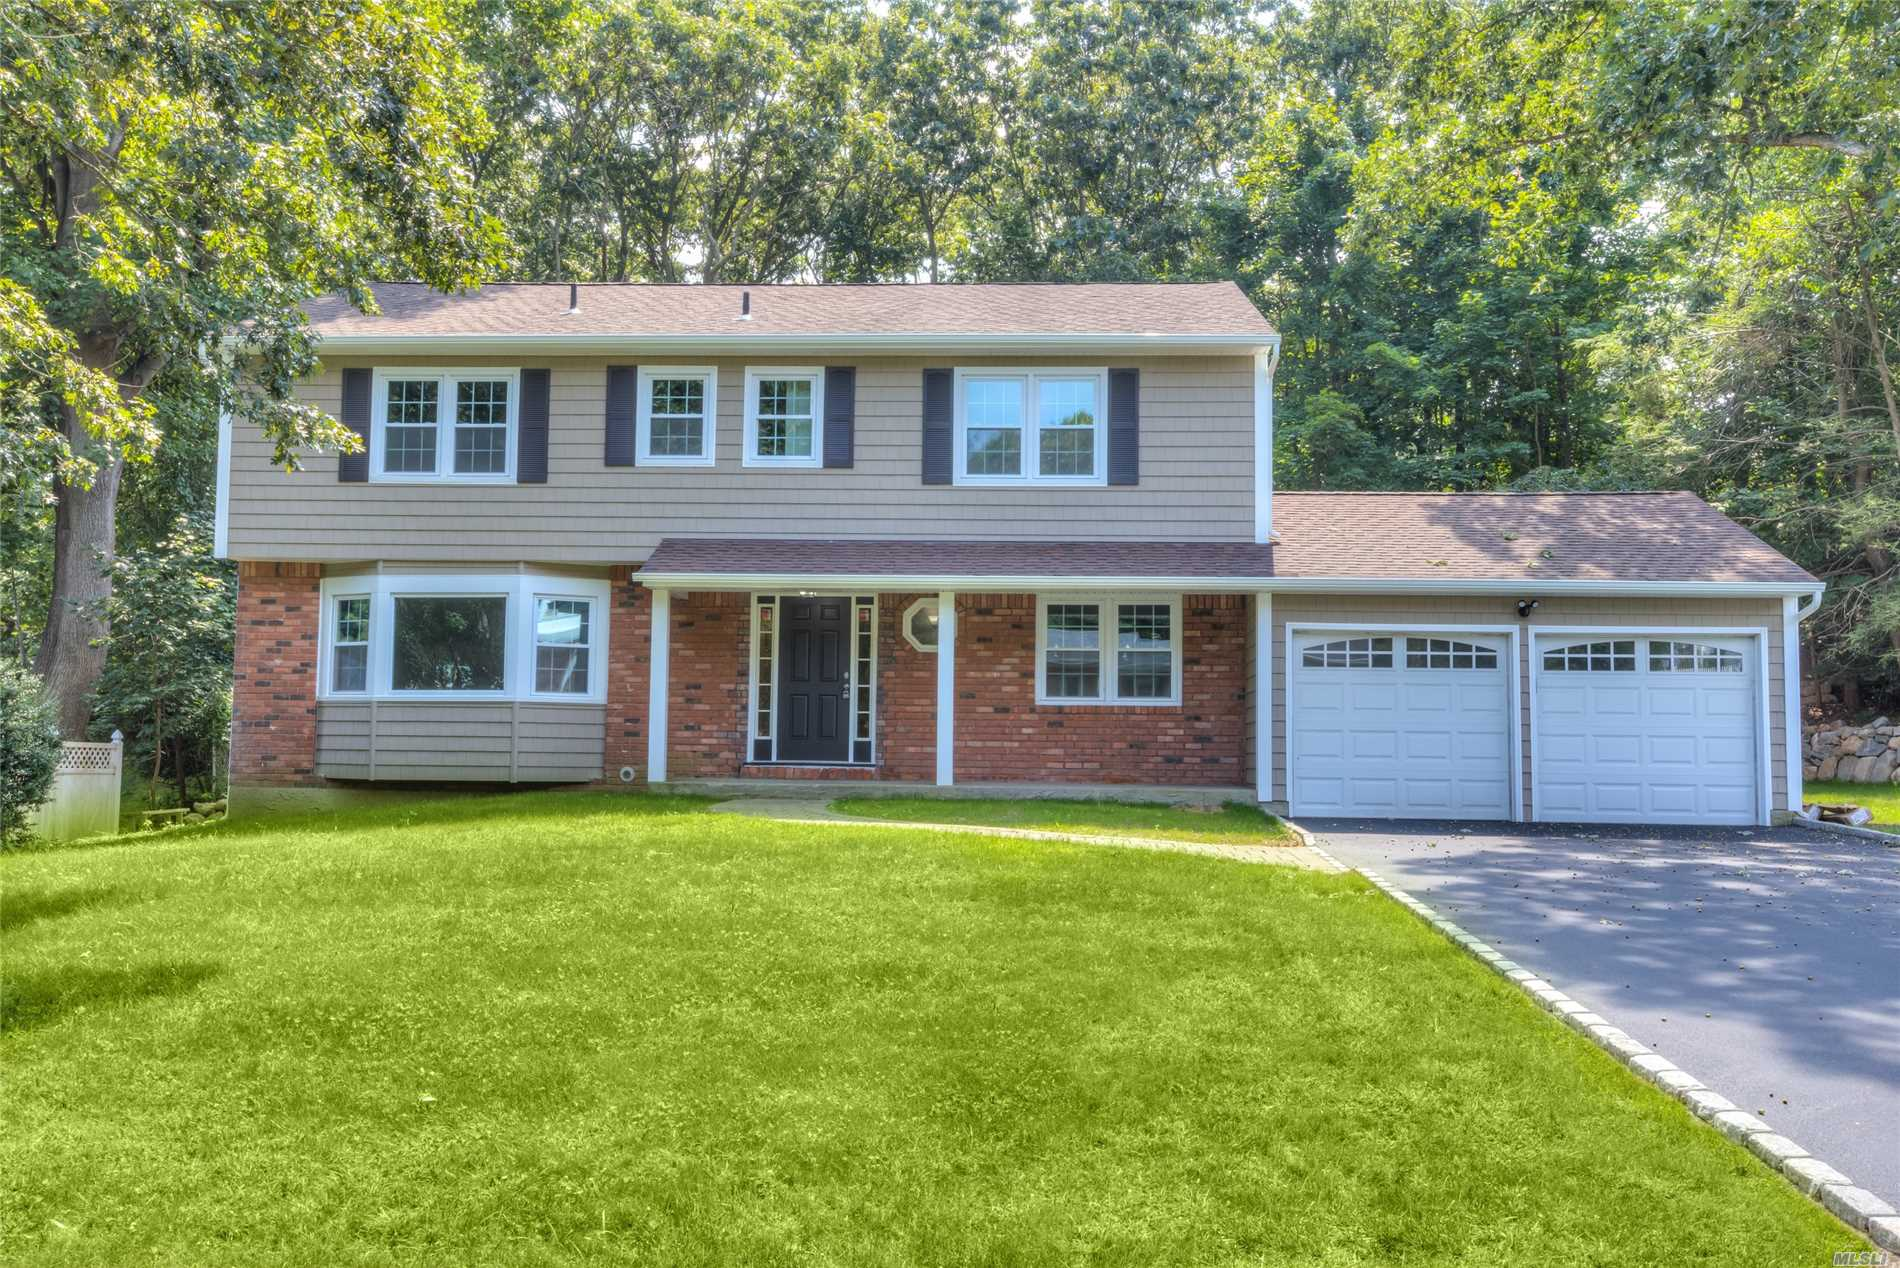 Just Renovated Aug 2017. New Siding, Windows, Driveway, Gleaming Hardwood Floors, New Kitchen, All New Baths, Just Move Right In!